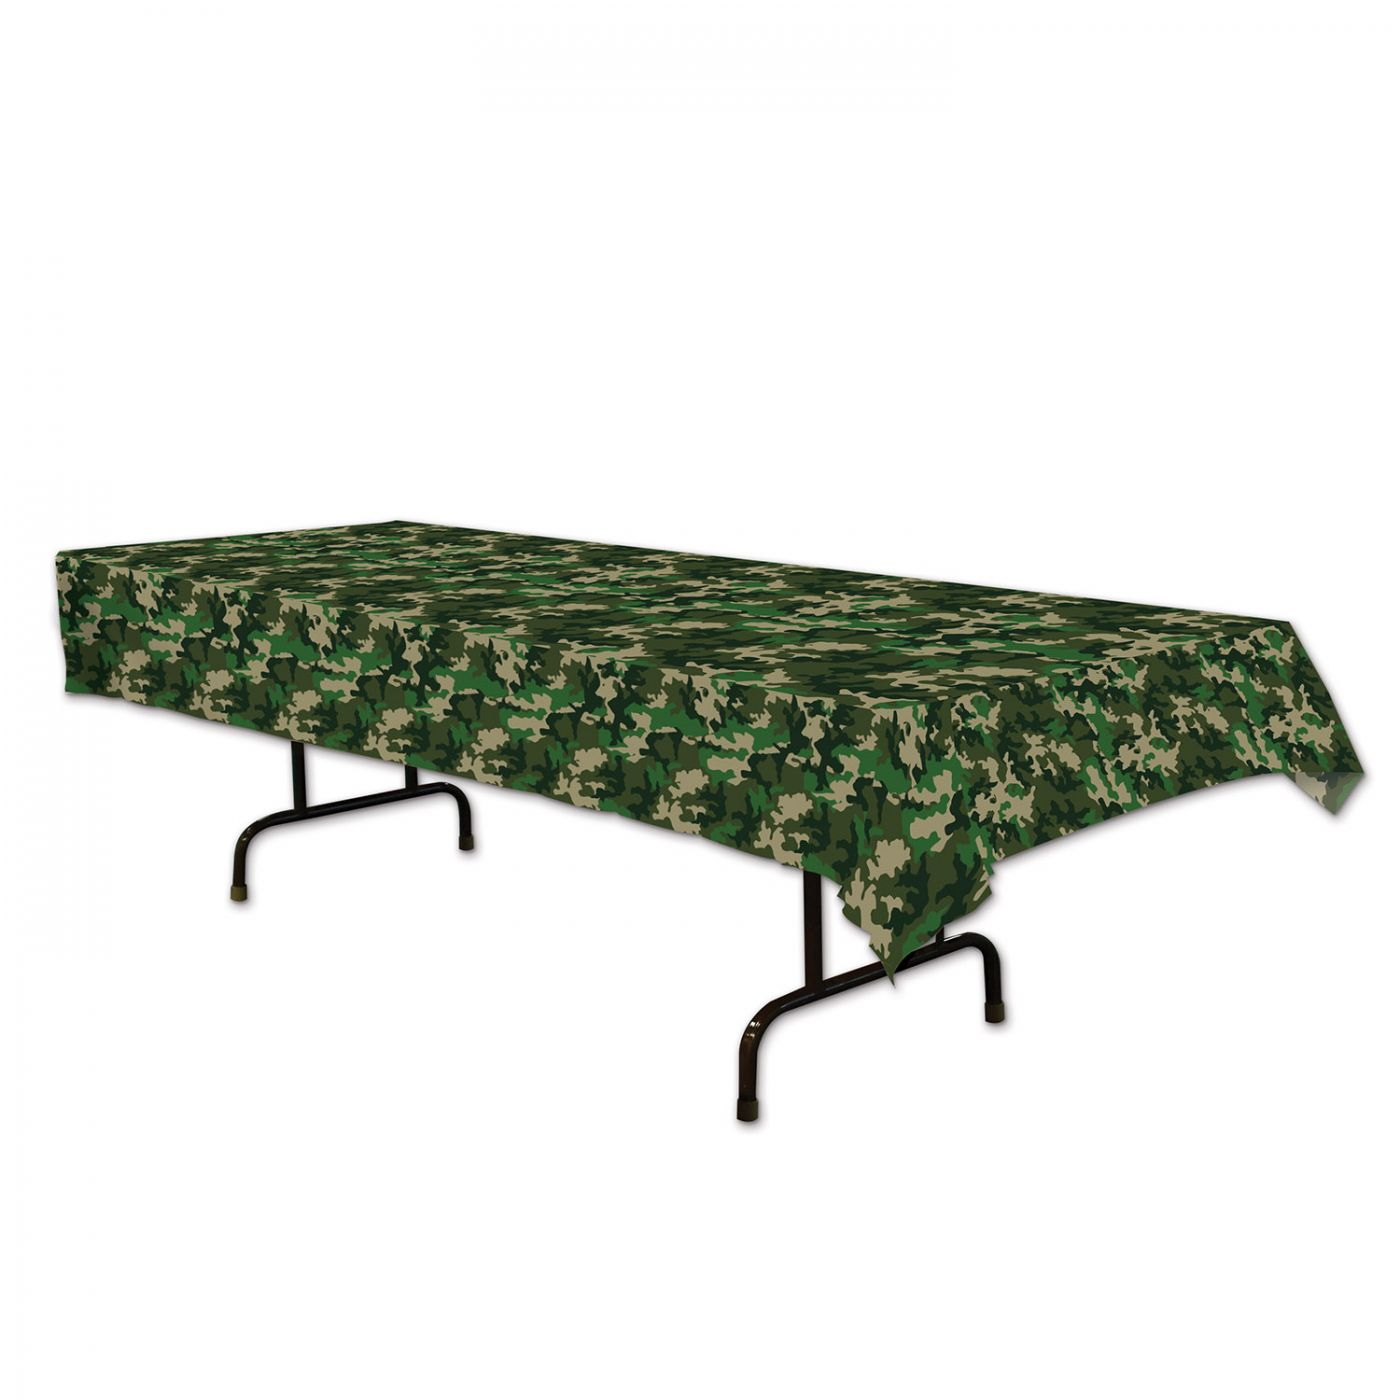 Camo Tablecover image